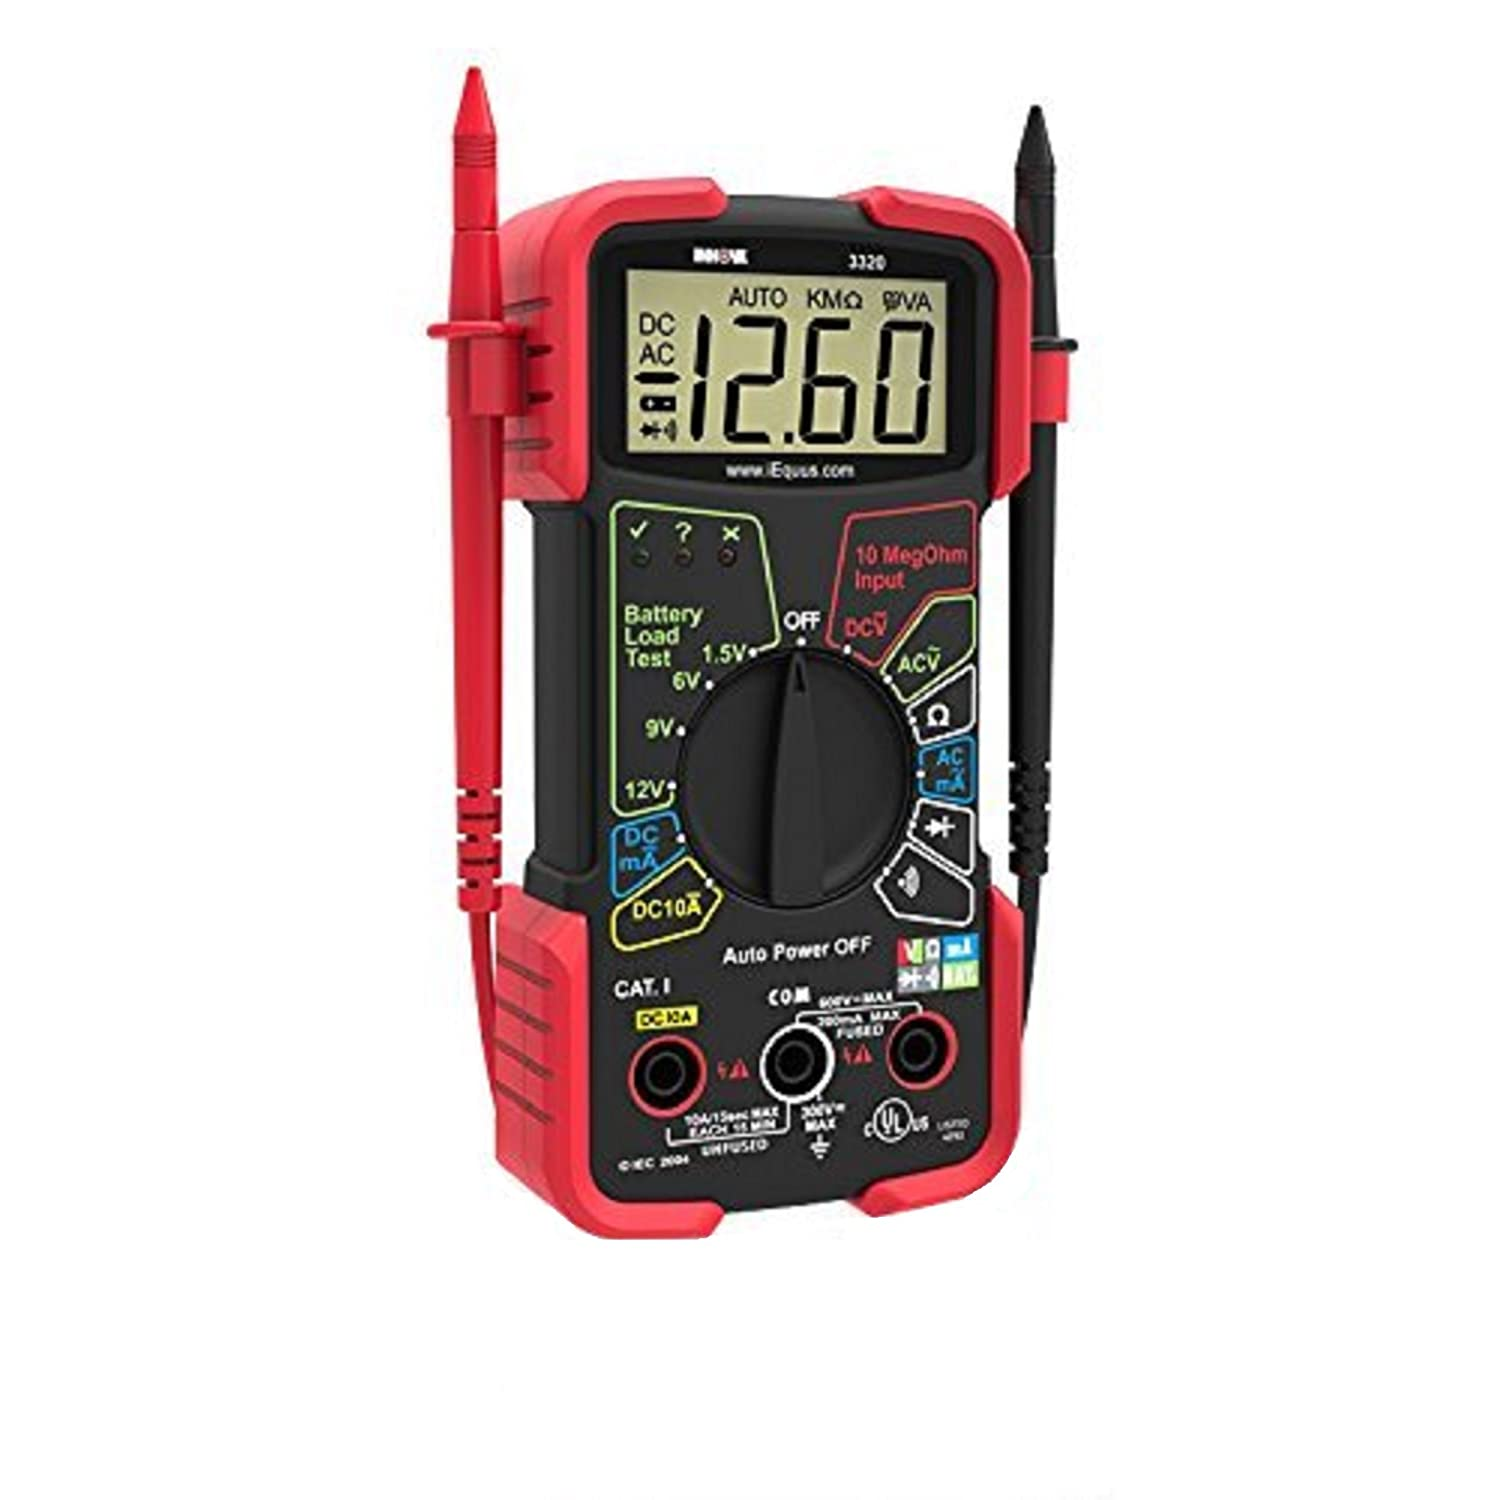 INNOVA 3320 Auto-Ranging Digital Multimeter made our list of equipment in our tips on how to choose and use the best RV battery for your needs and how to maintain your deep cycle RV battery in healthy condition to maximize its lifespan